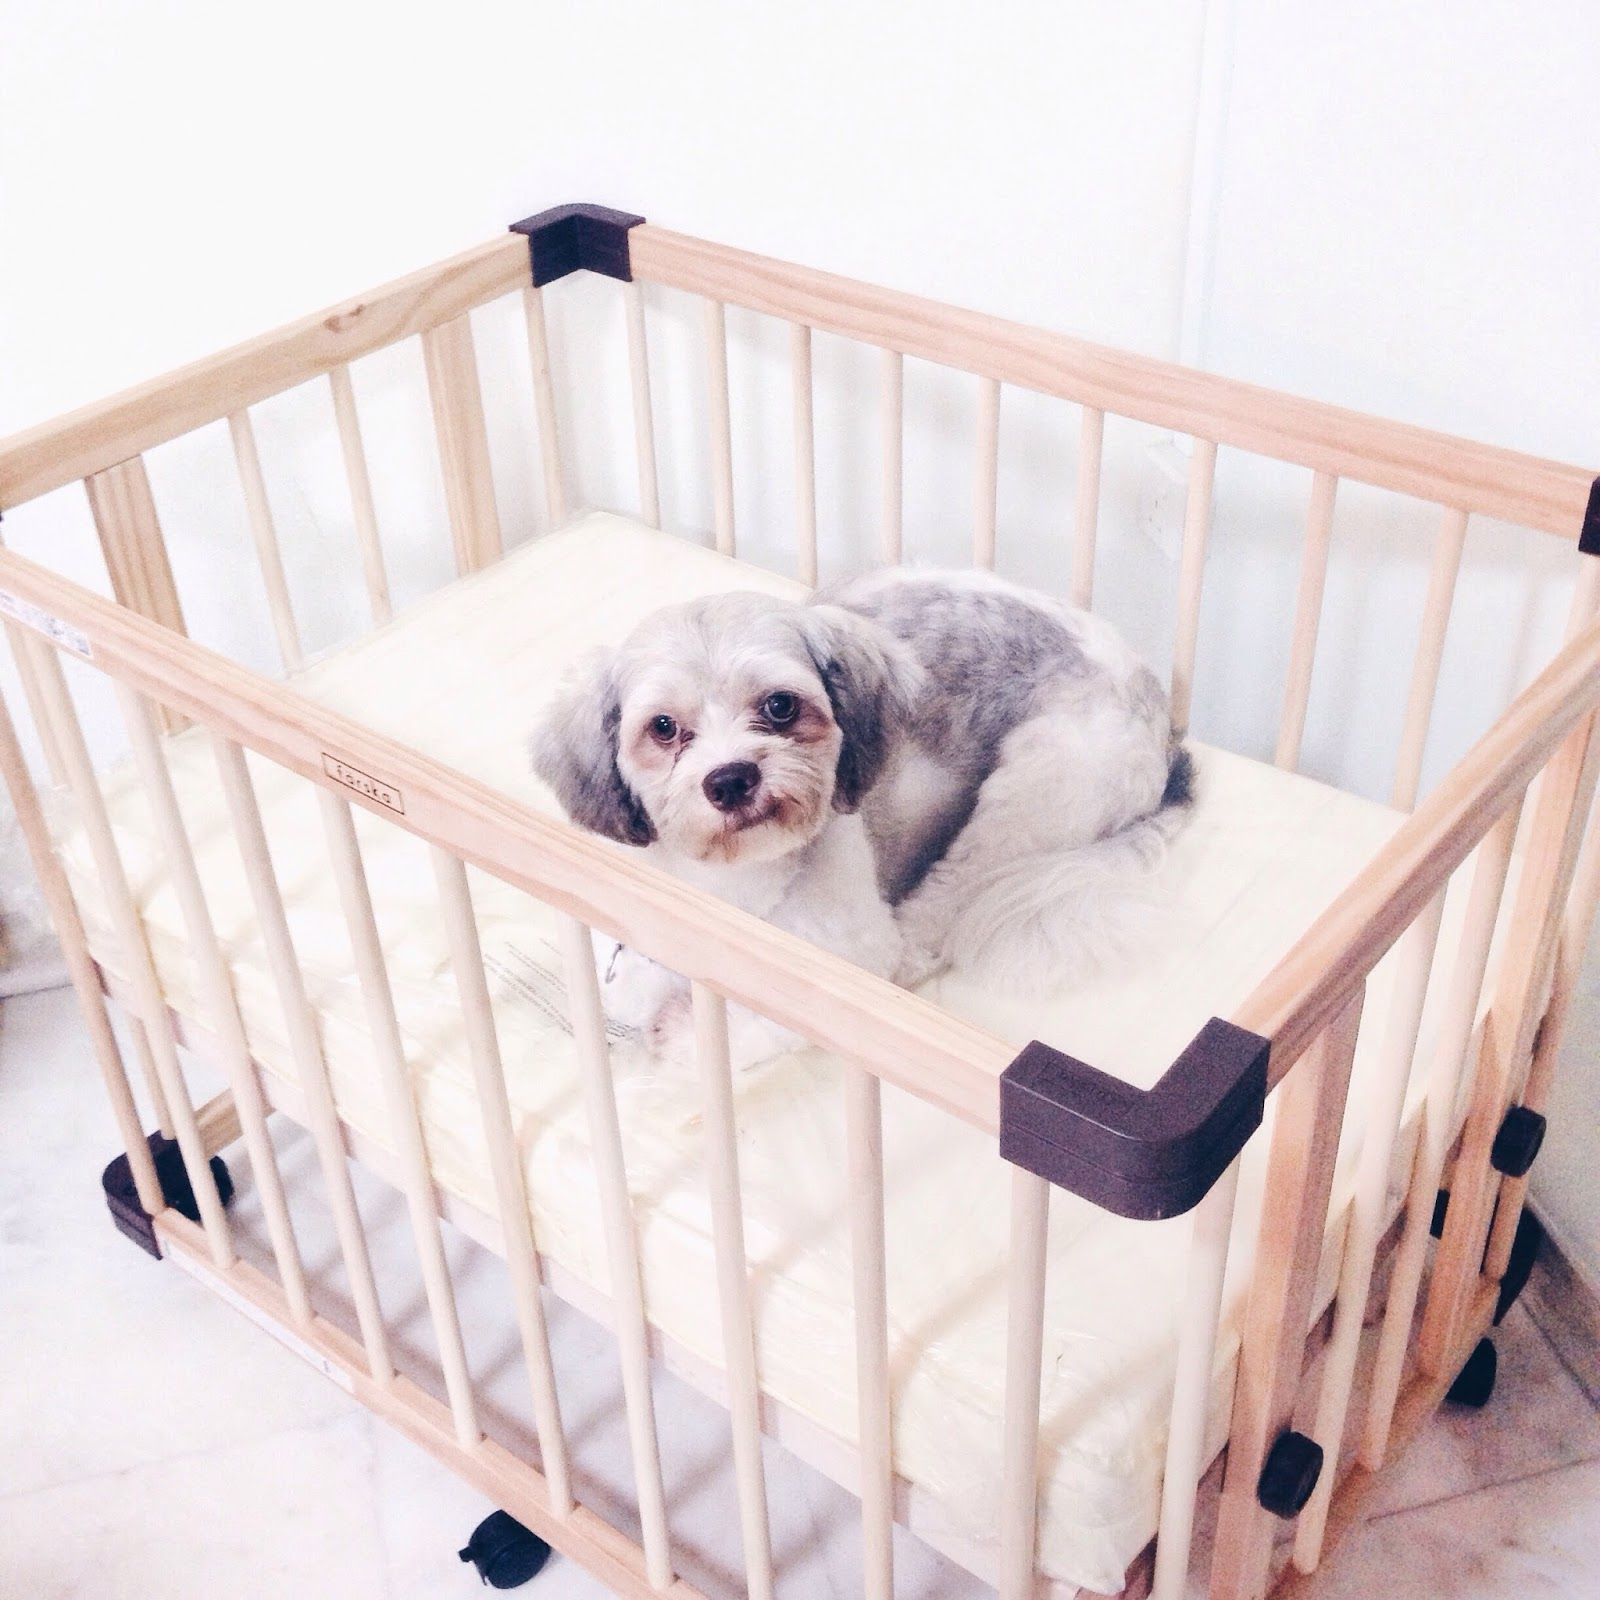 com products shop puppy set ebayisapi qtyman cribs littlest ws accessory buy ebay pets quantitymanager nap vieweapp time double from a lps z dll crib pet collections appid